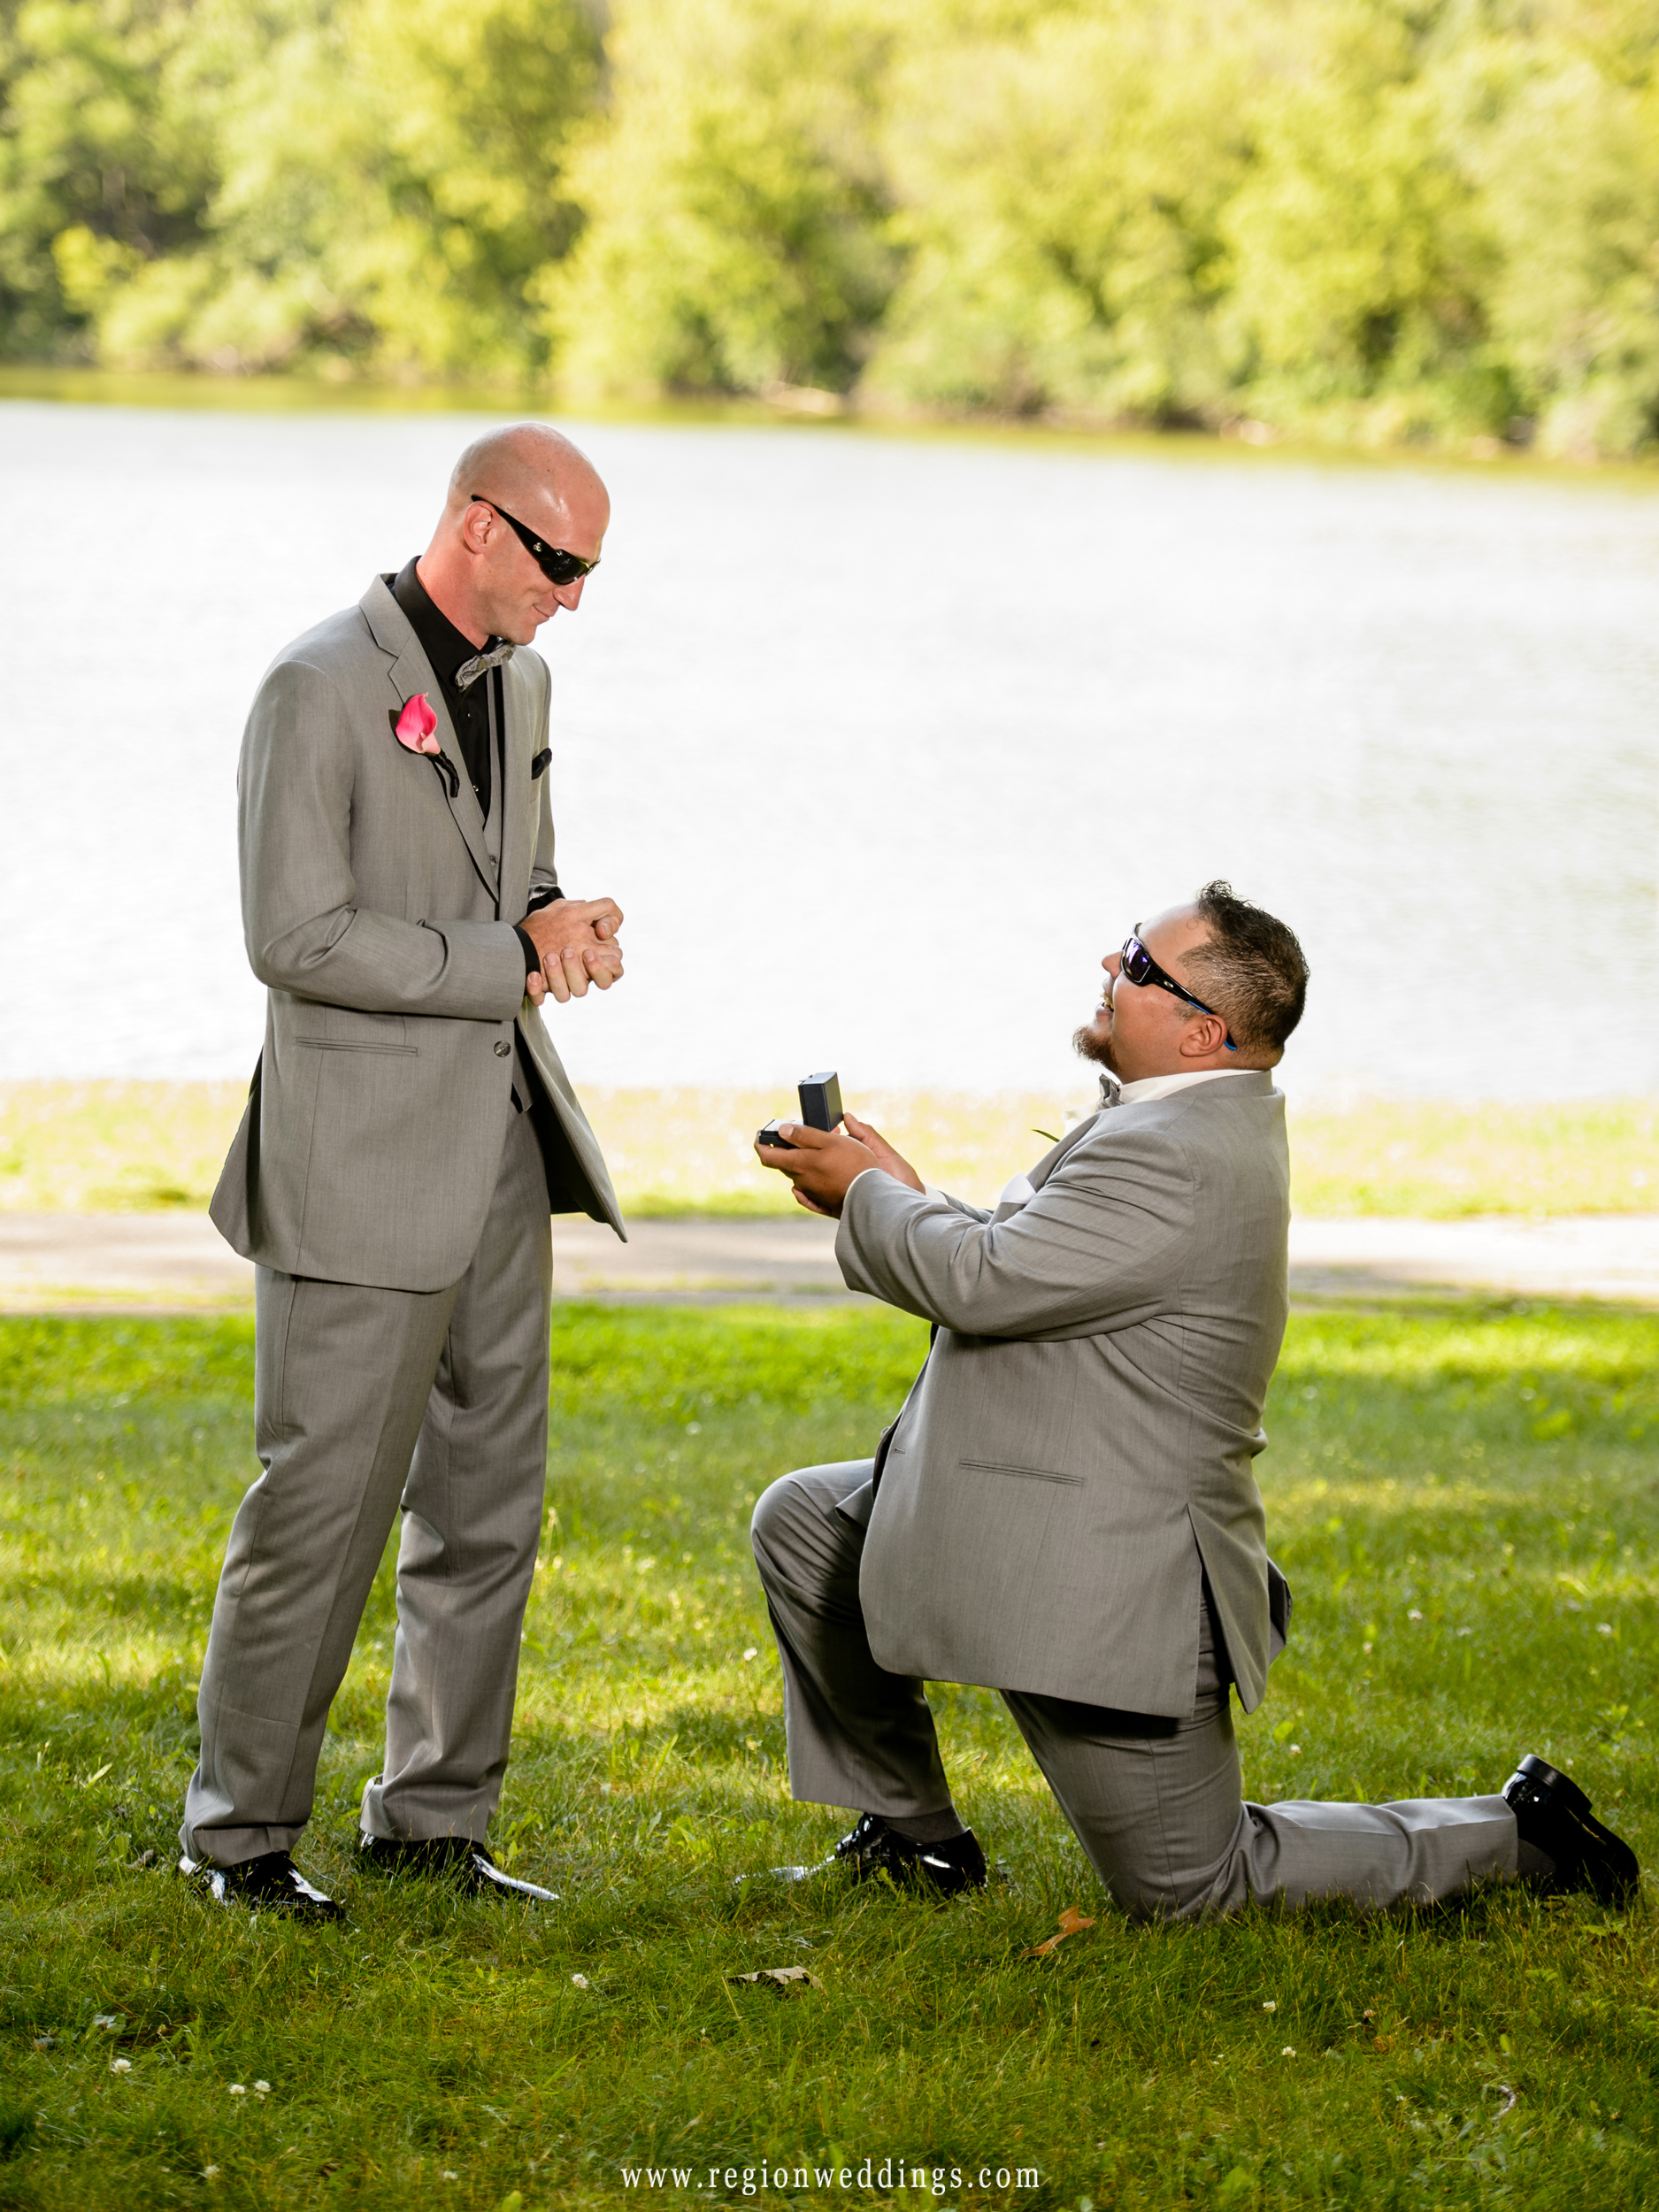 Mock proposal from the groom to his groomsman.